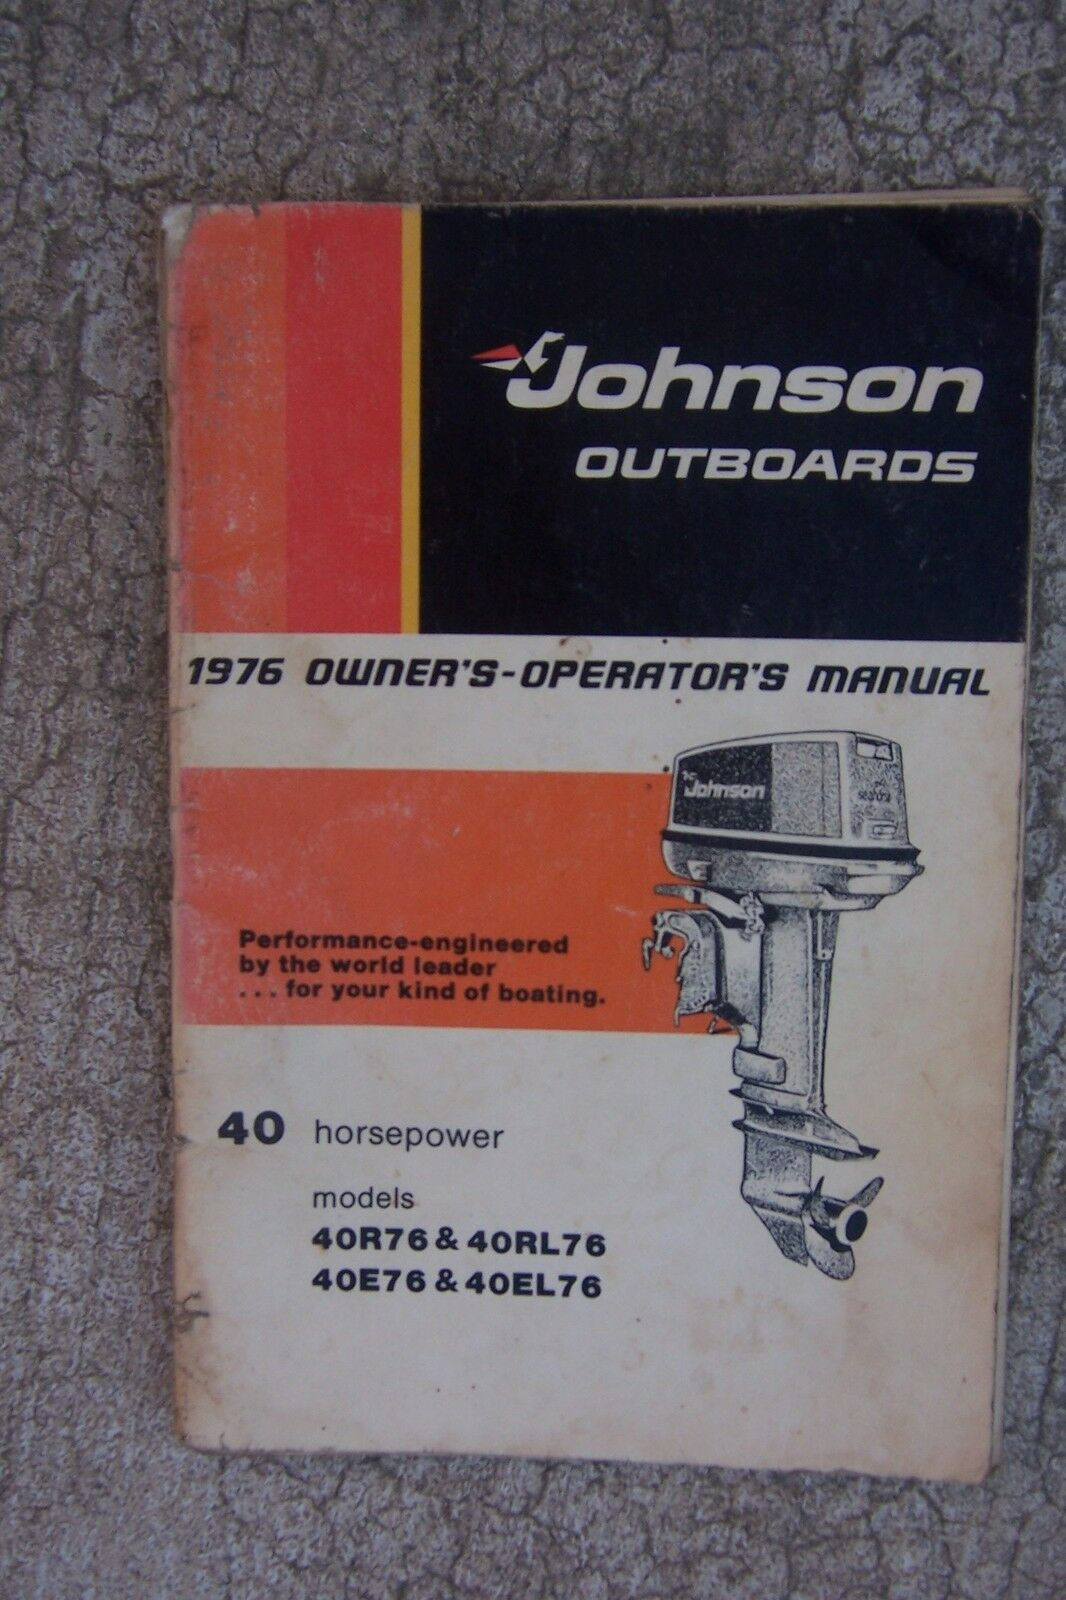 1976 Johnson Outboard 40 HP 40R76 405L76 40E76 40EL76 Owner Operator Manual  S 1 of 1Only 1 available ...